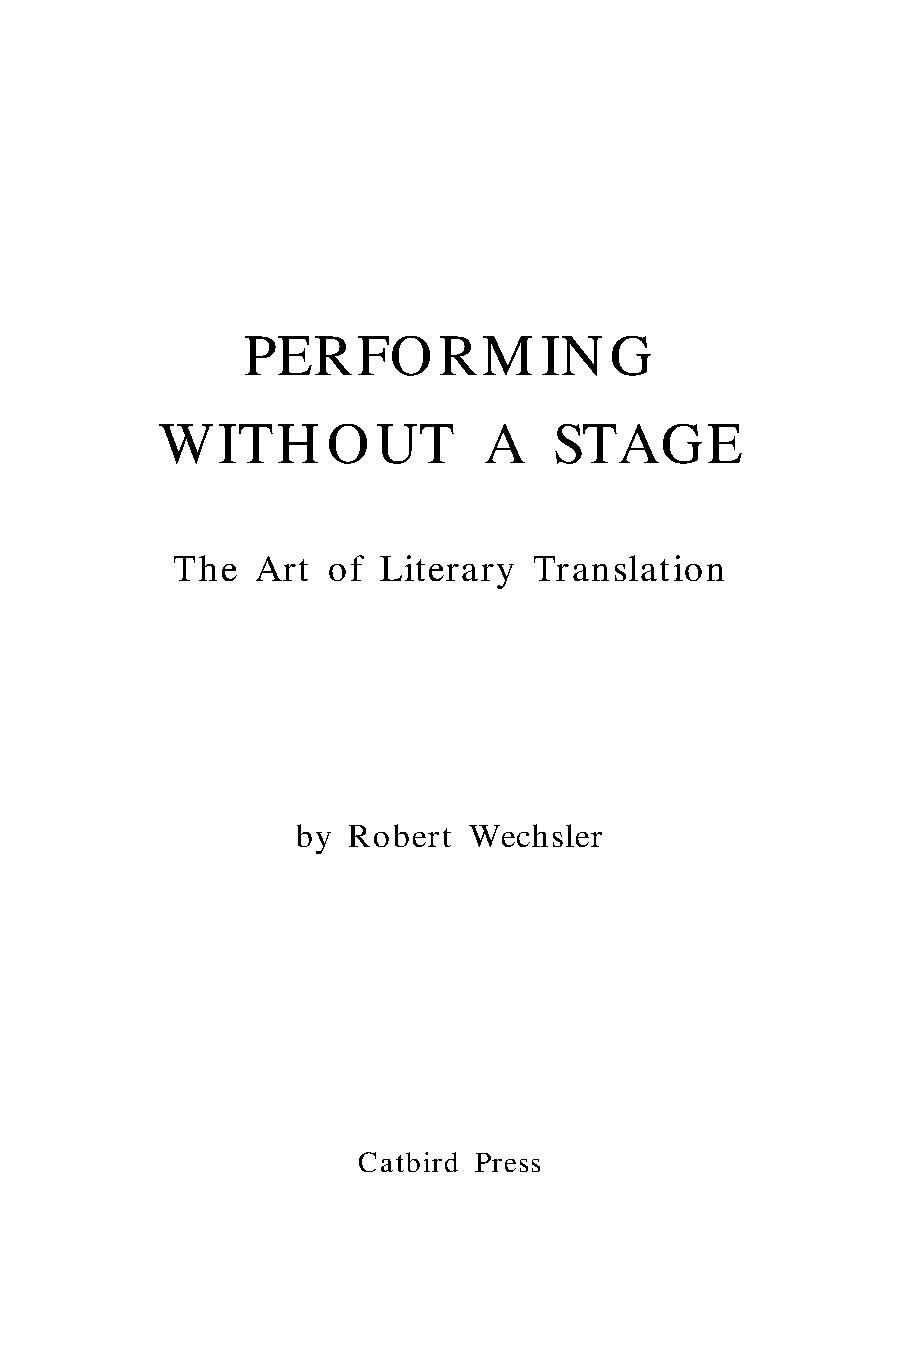 Performing Without a Stage - The Art of Literary Translation - by Robert Wechsler.pdf